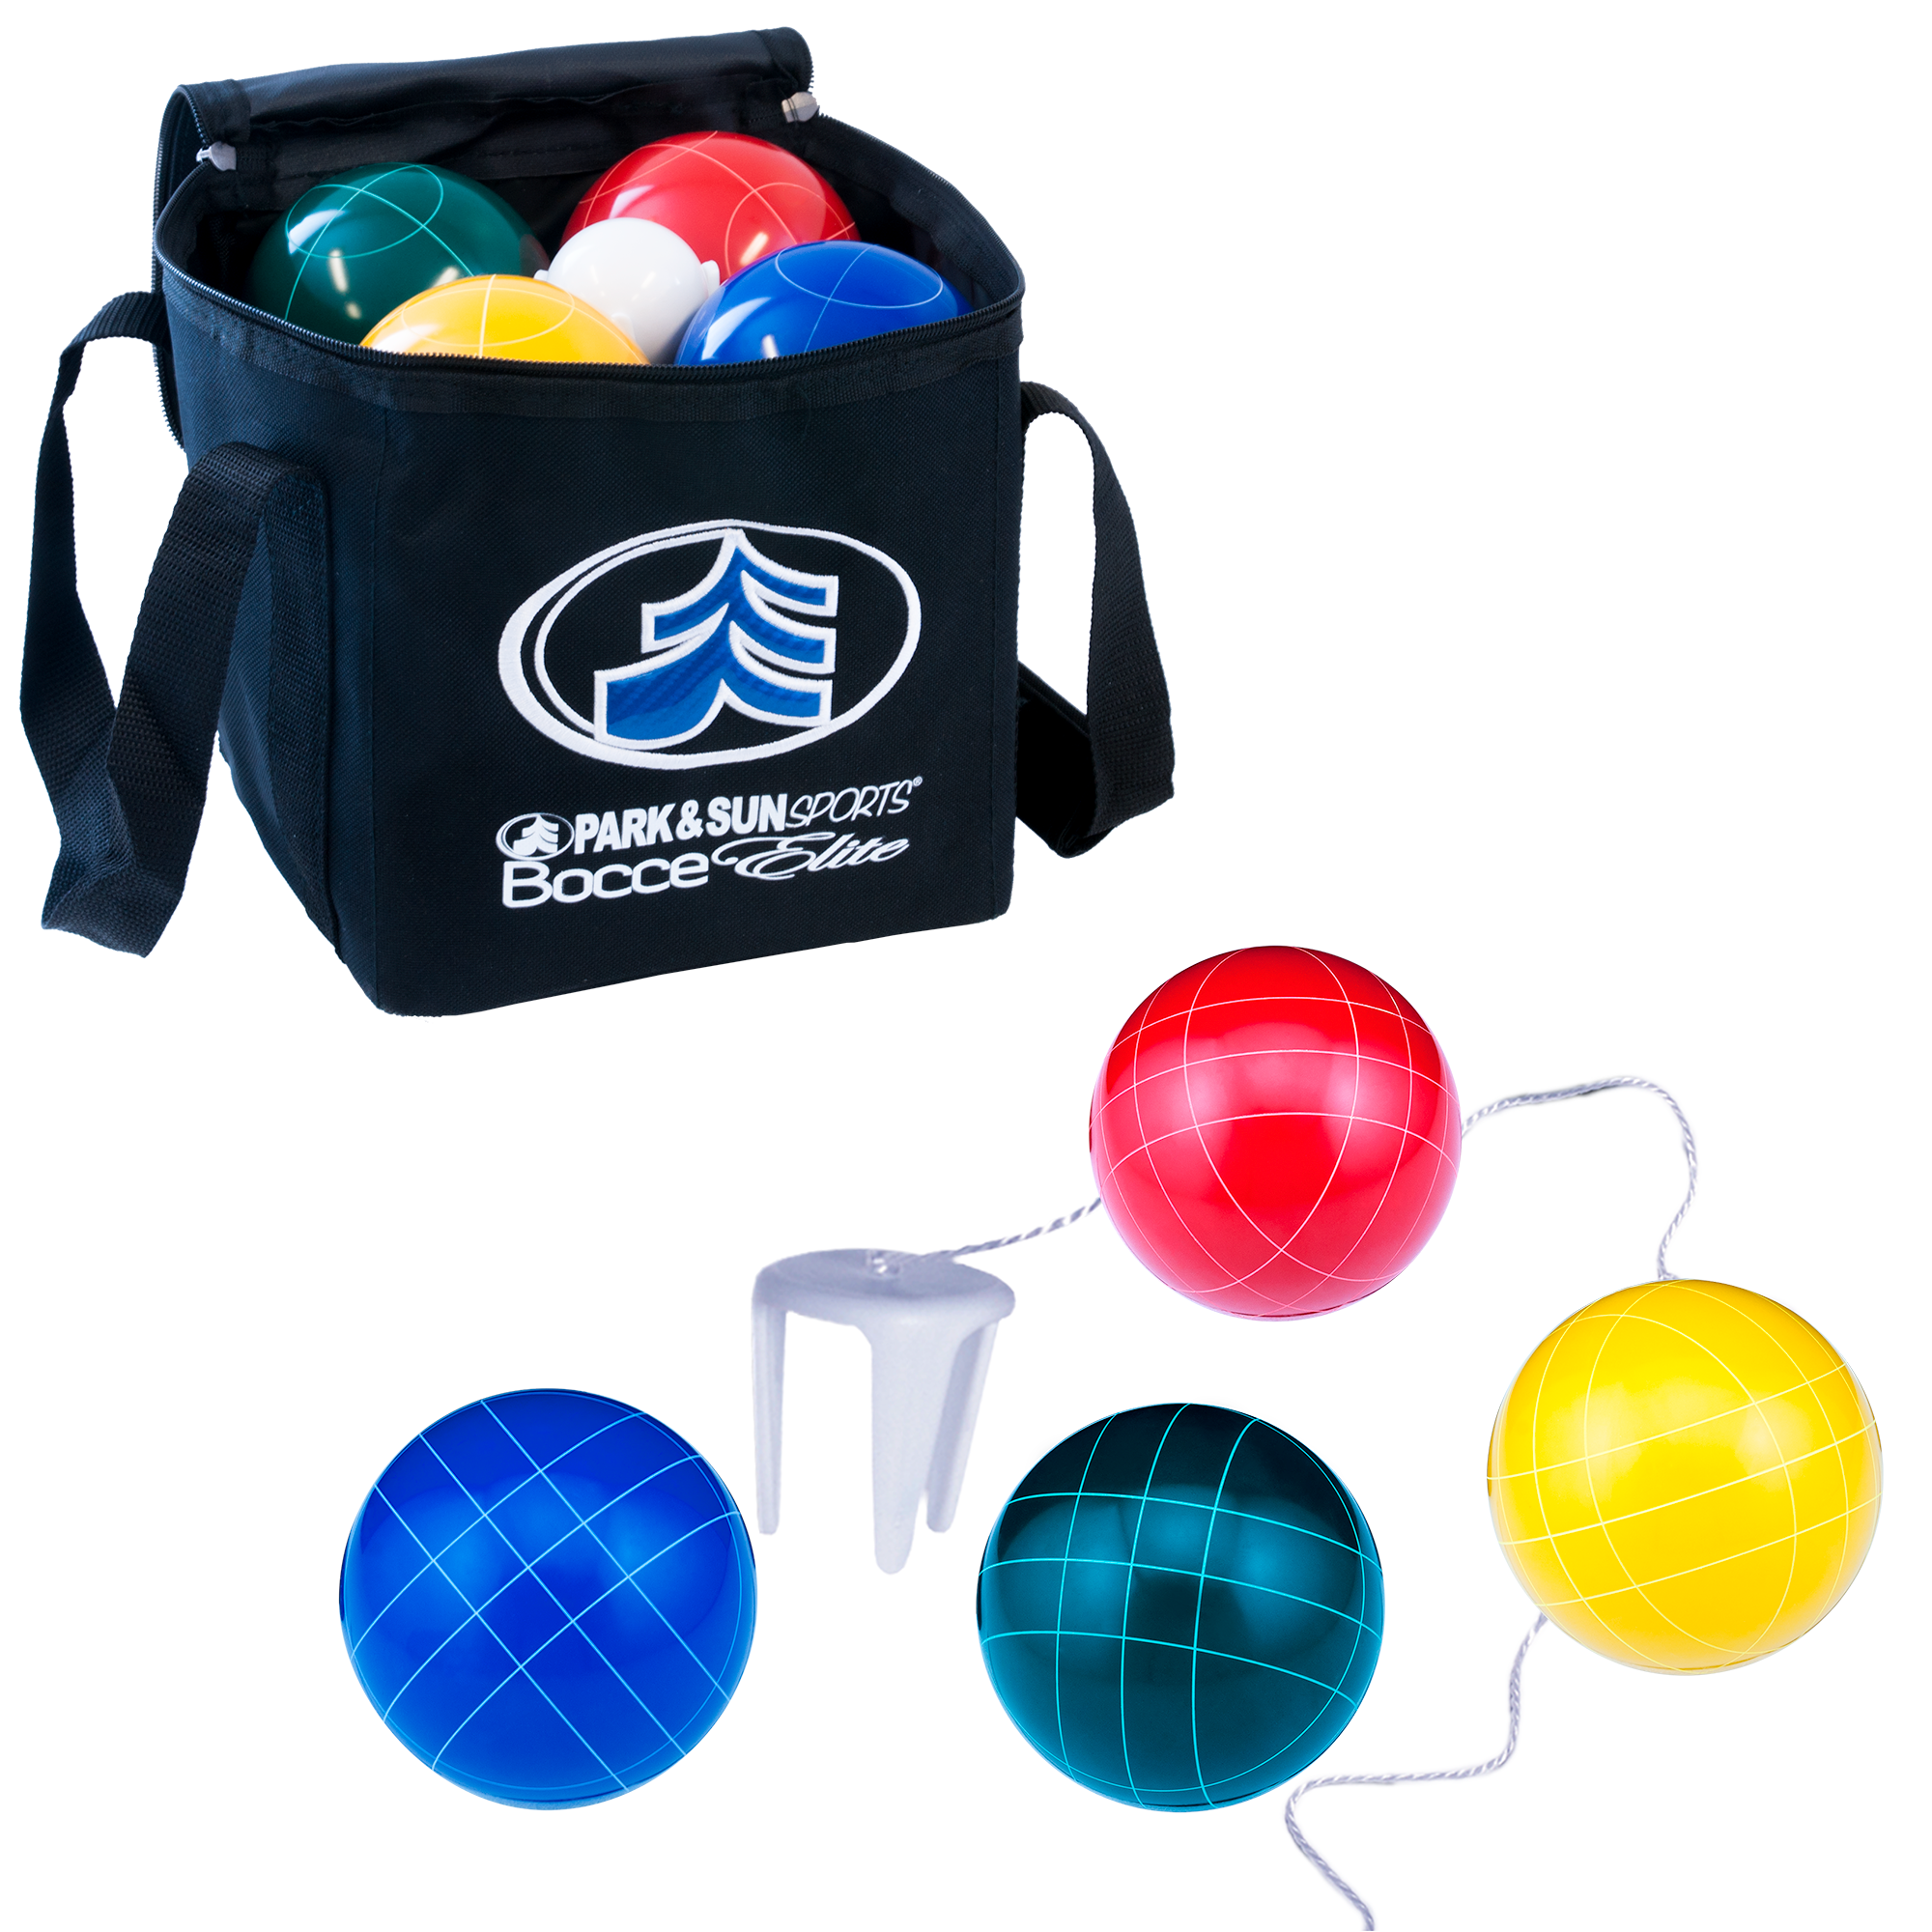 Park and Sports Bocce Elite Pro Product Layout